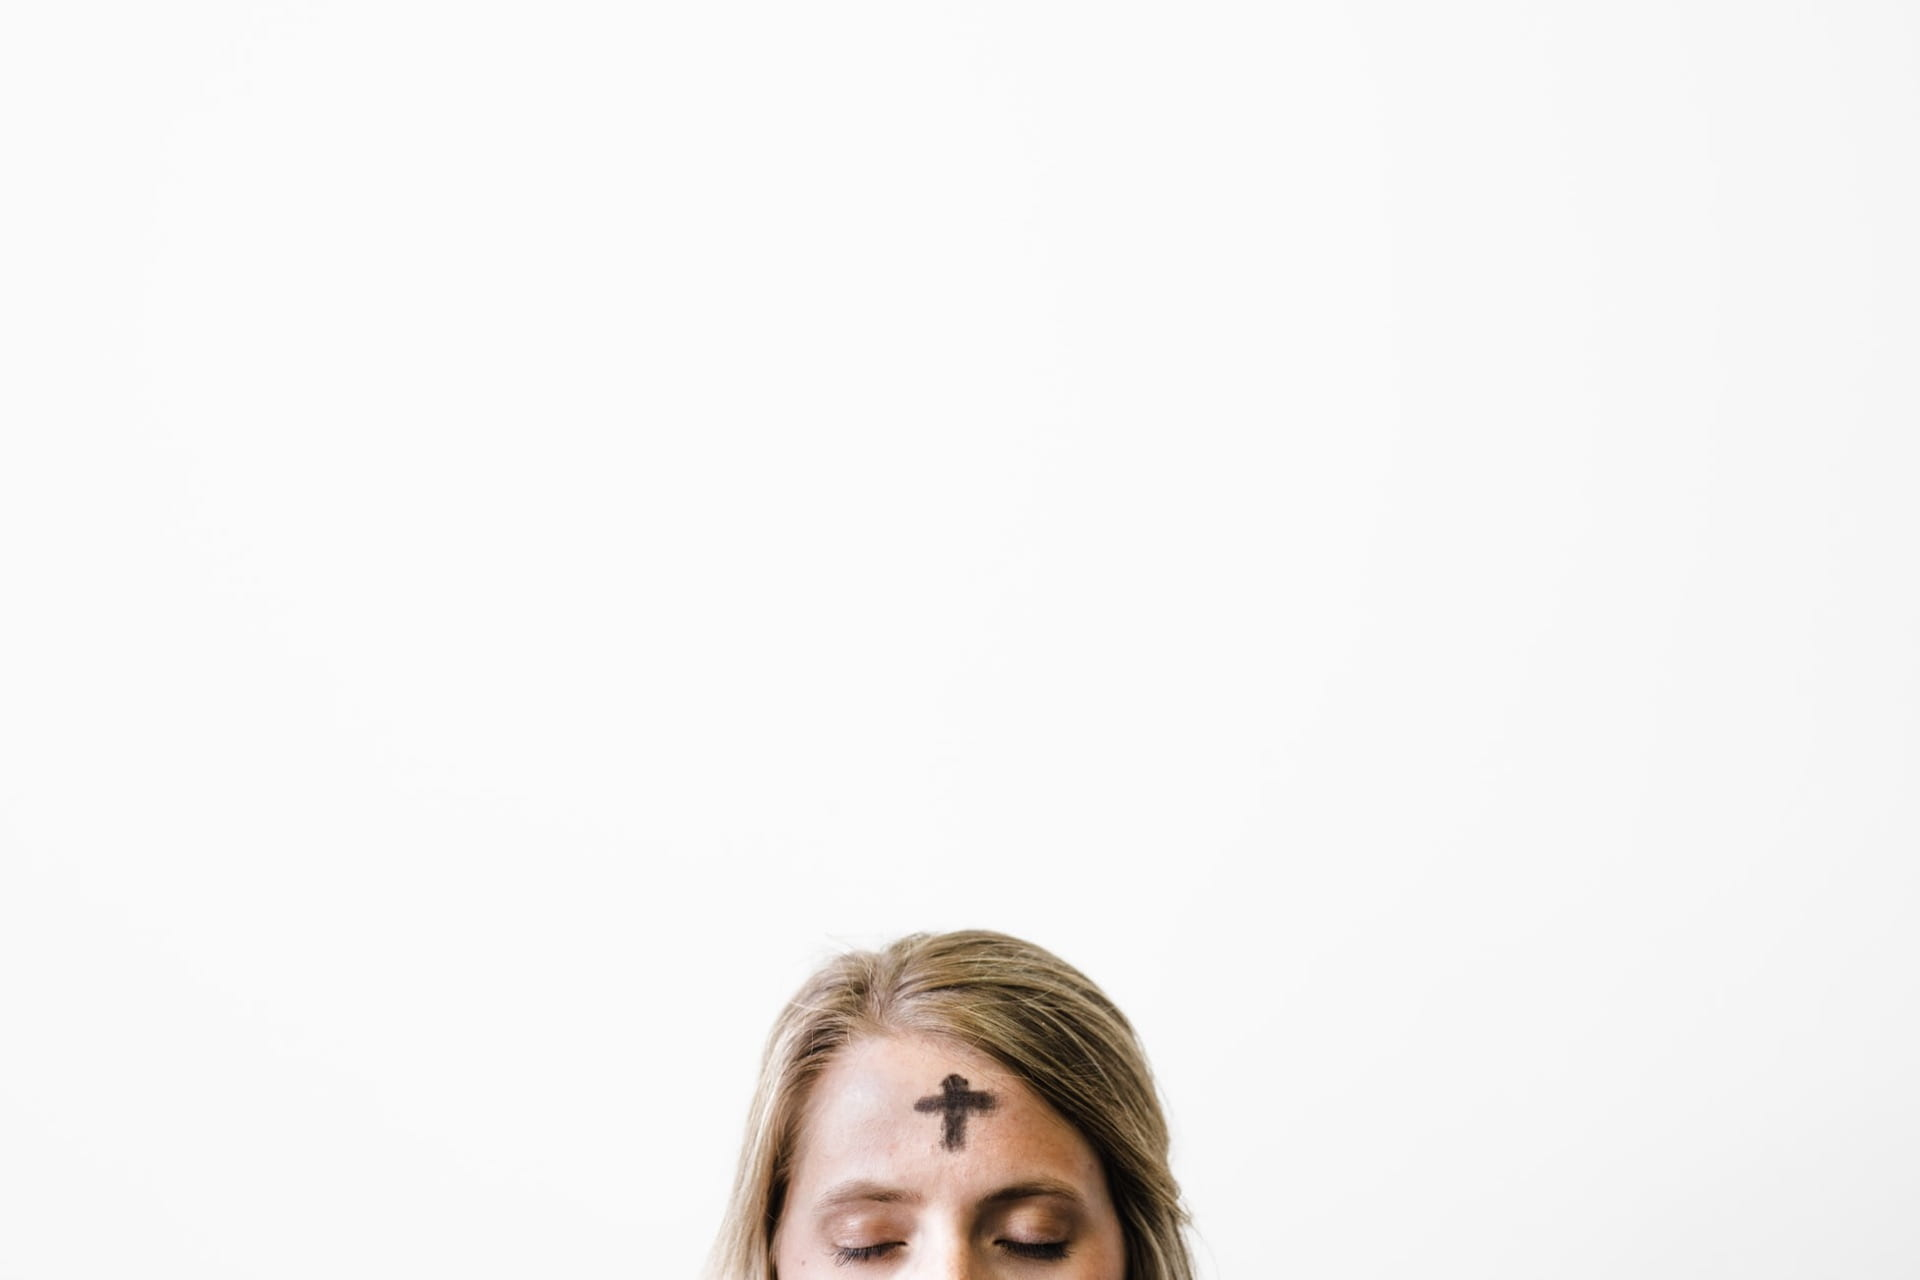 A woman with her eyes closed with ashes on her forehead to celebrate Ash Wednesday